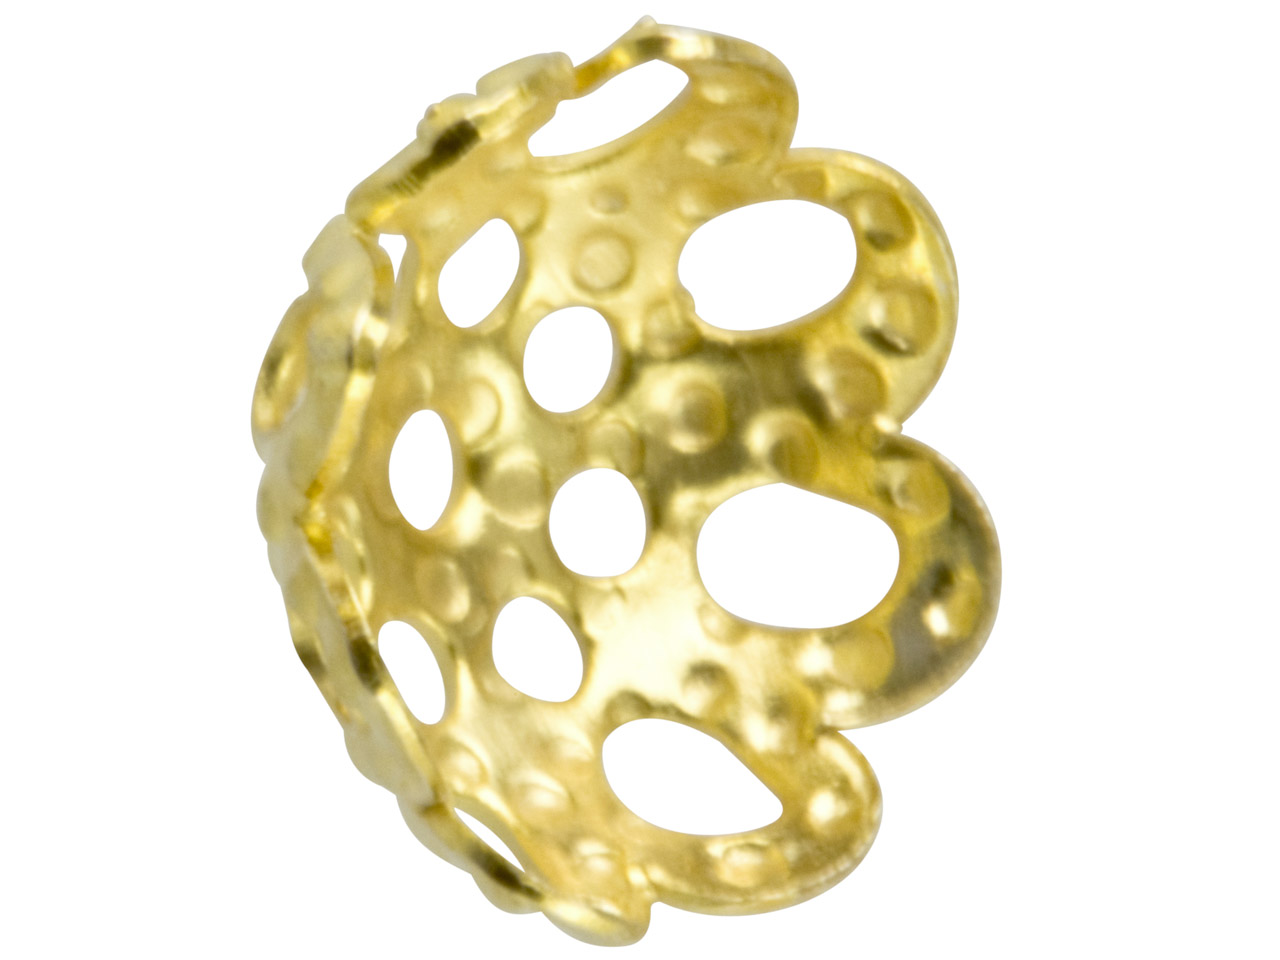 Gold Plated 6mm Filigree Bead Cap  Pack of 25